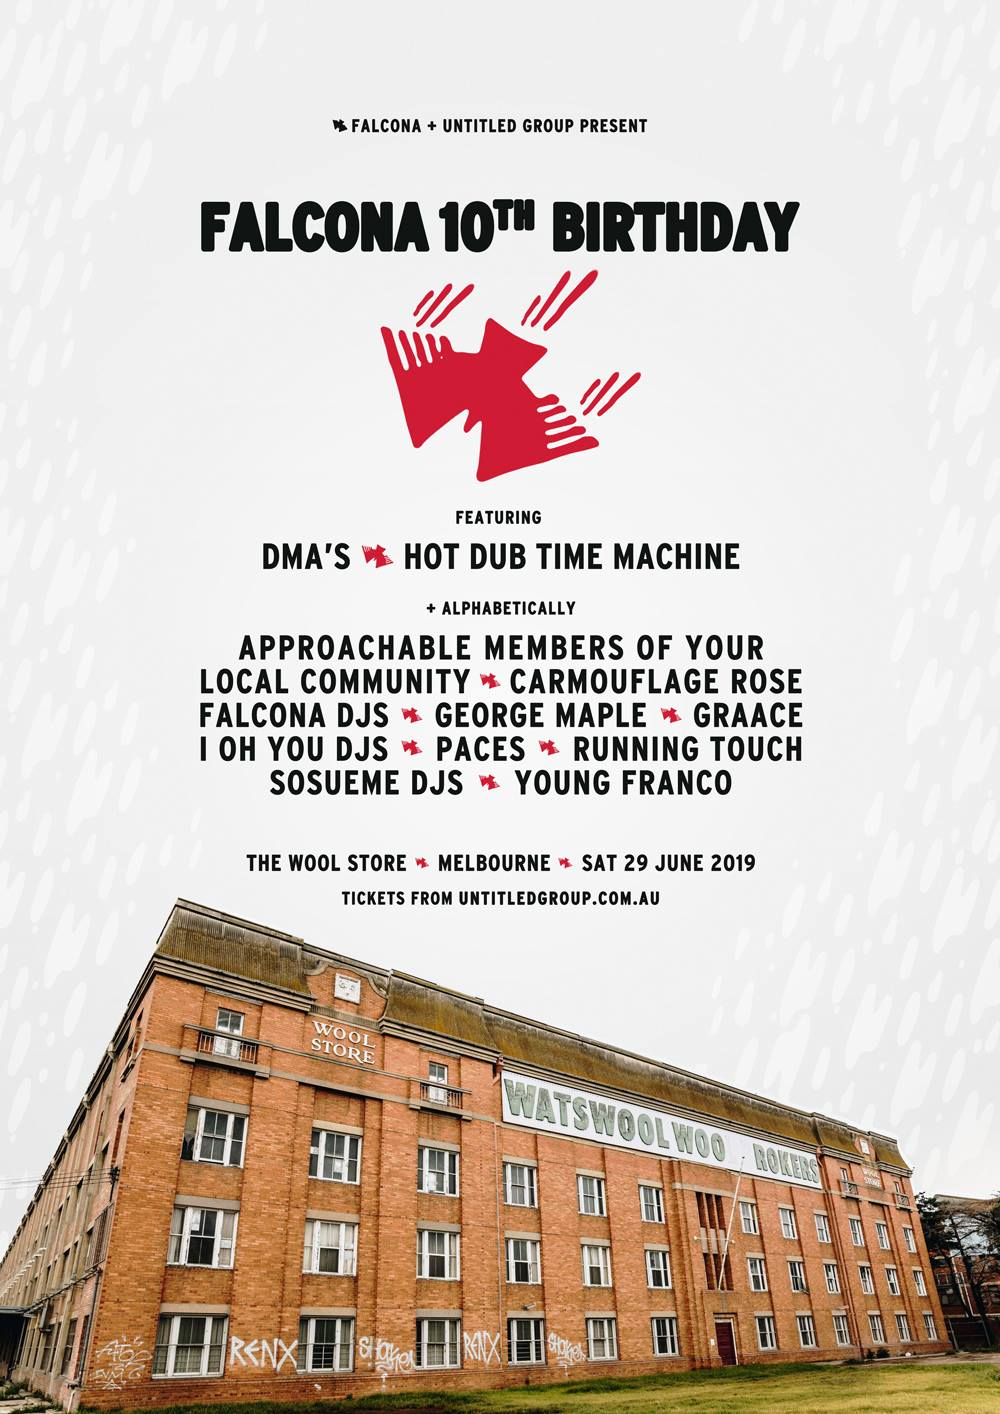 Falcona 10th Birthday Party - Live in melbourne